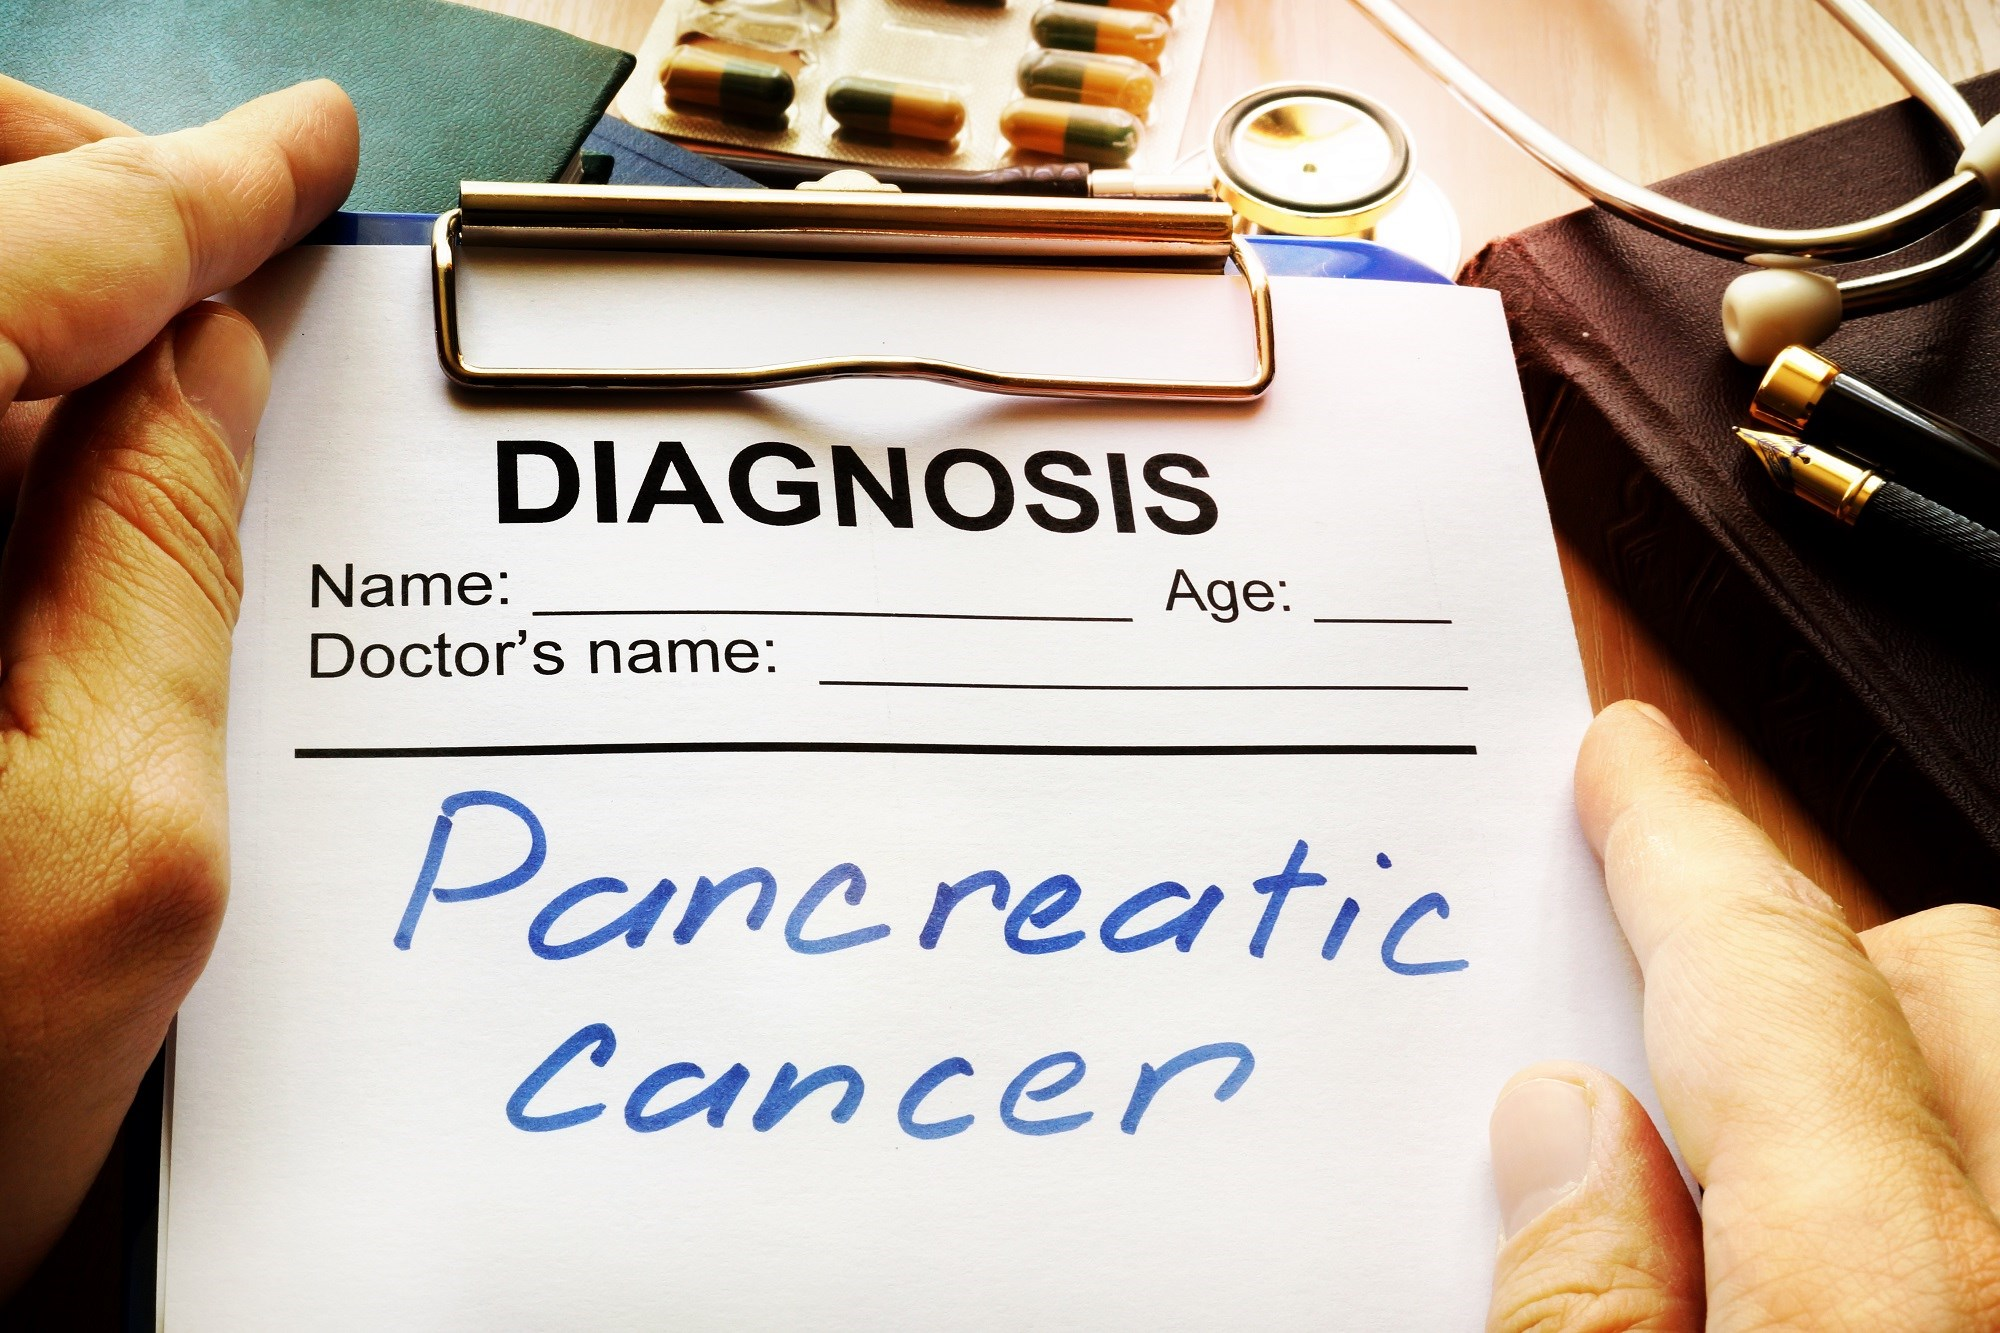 Men and women who are obese as adolescents are at an increased risk for pancreatic cancer in adulthood.